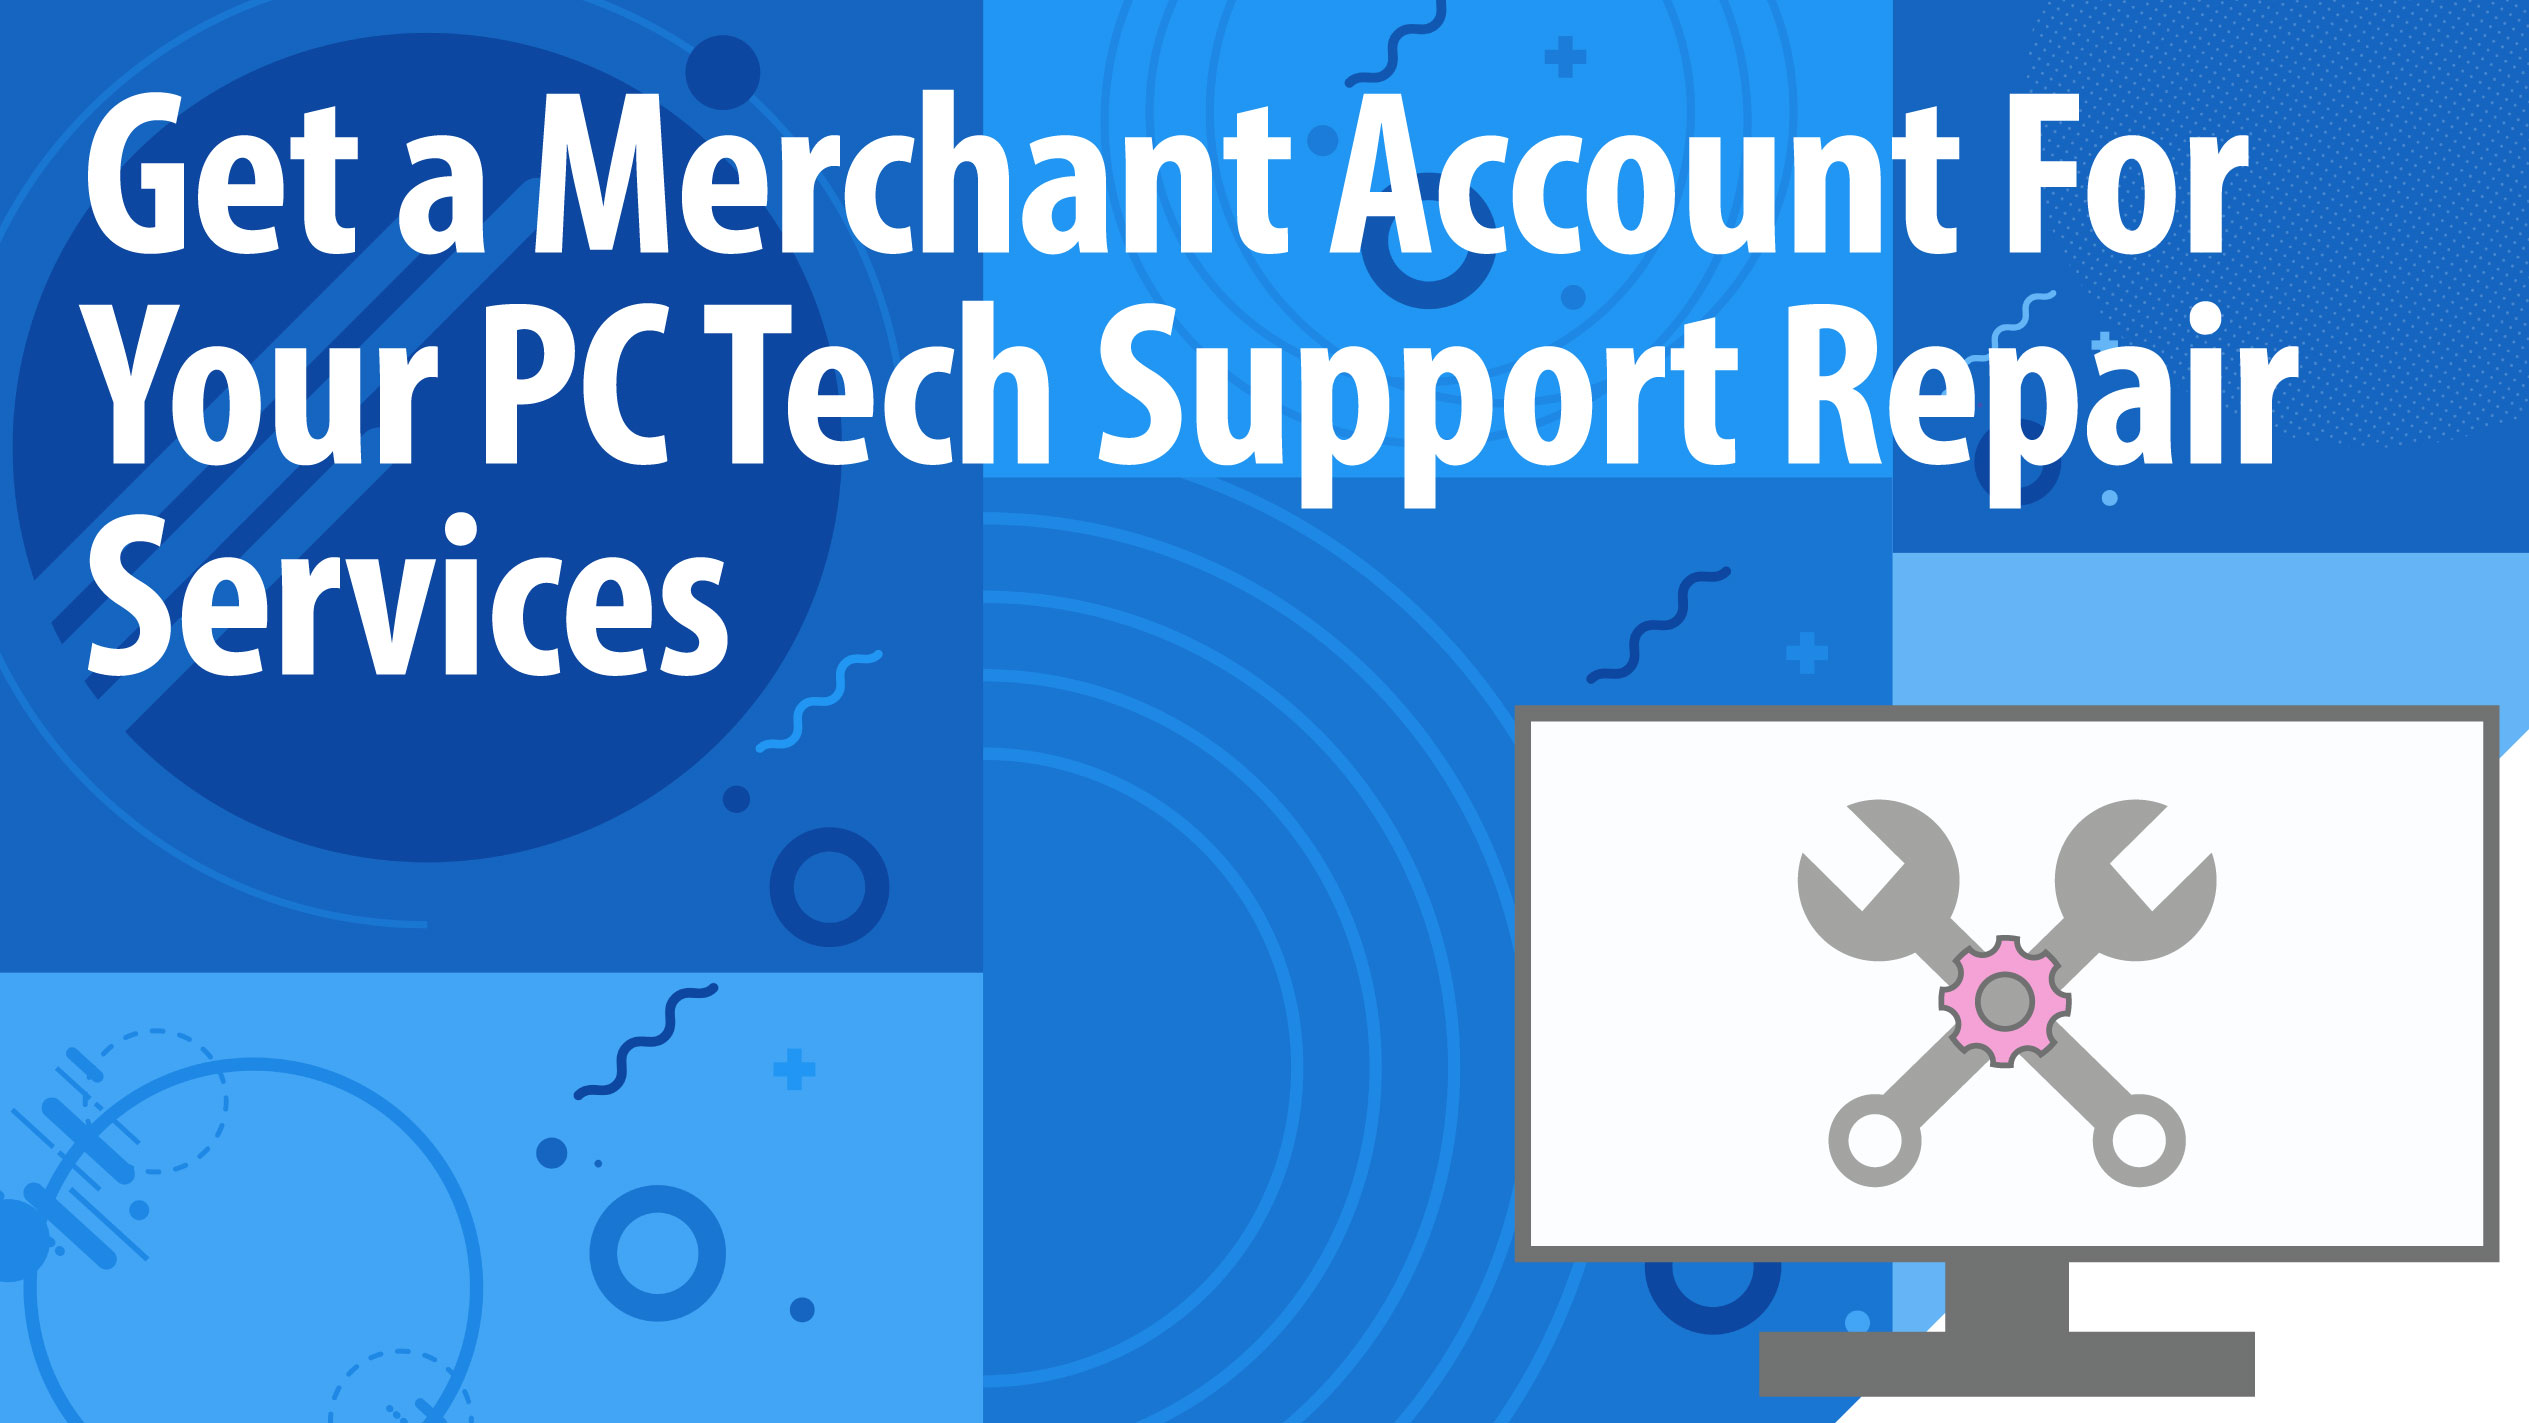 Get a Merchant Account For Your PC Tech Support Repair Services